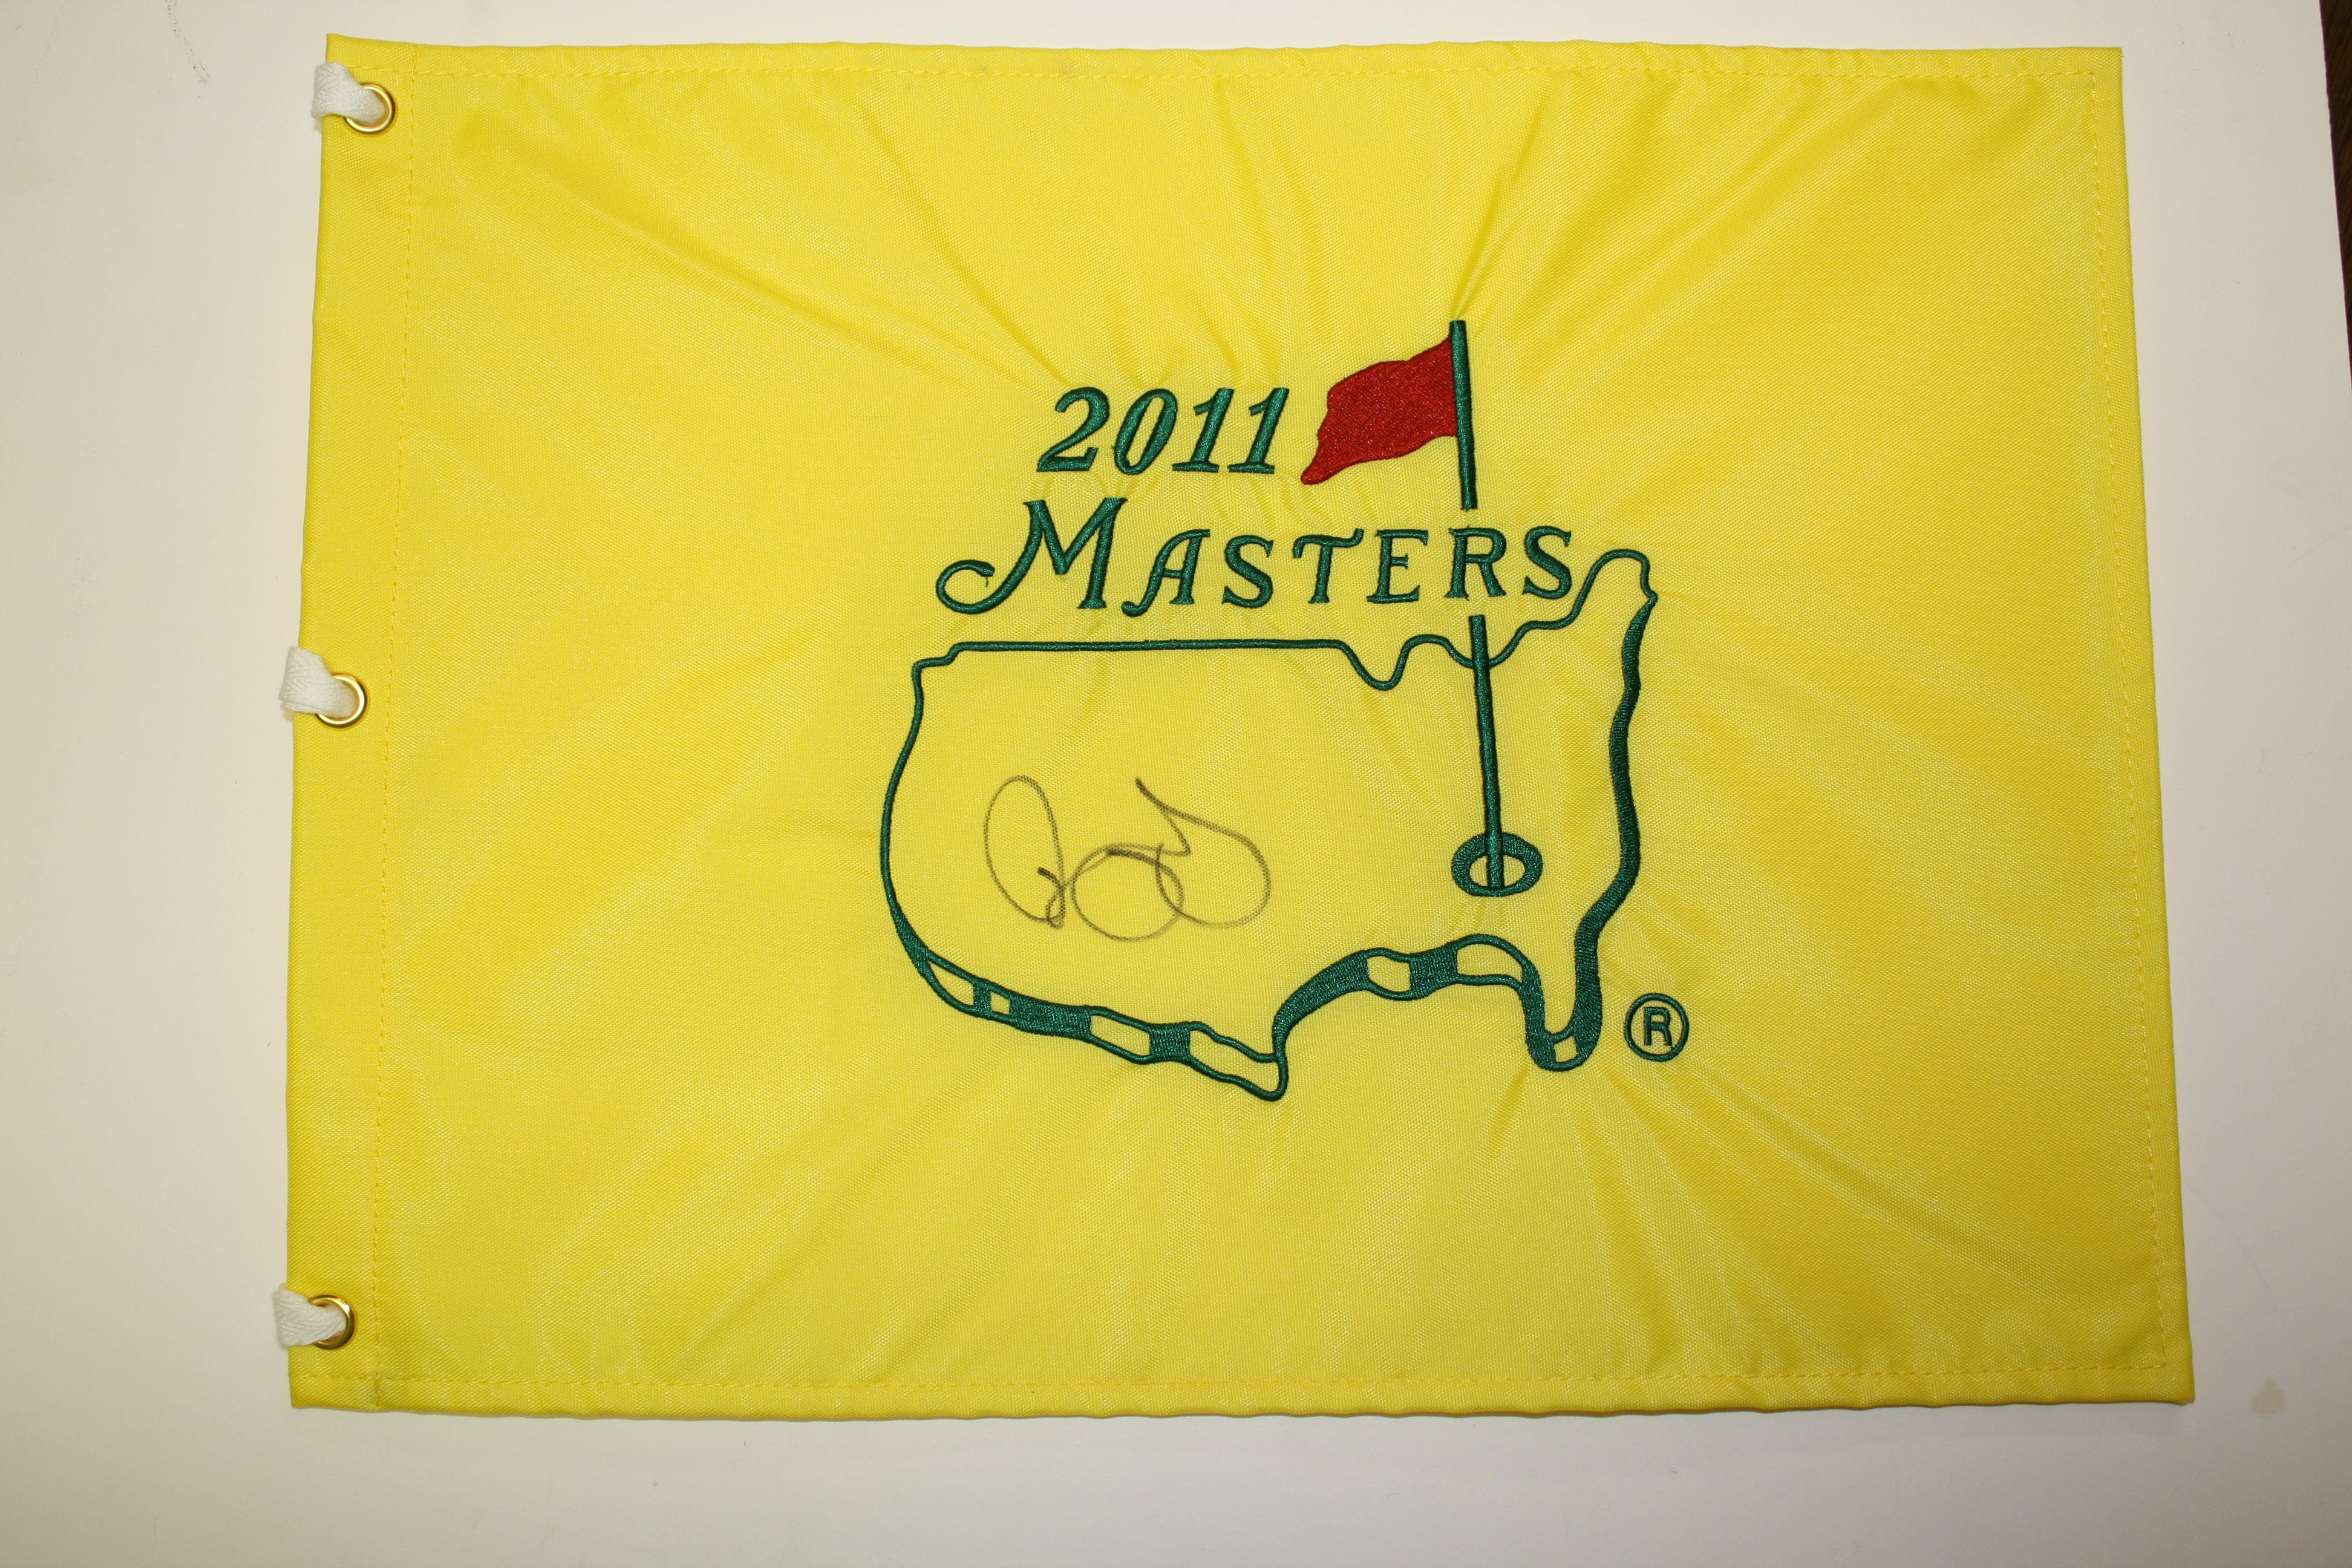 lot detail - rory mcilroy signed 2011 masters embroidered flag